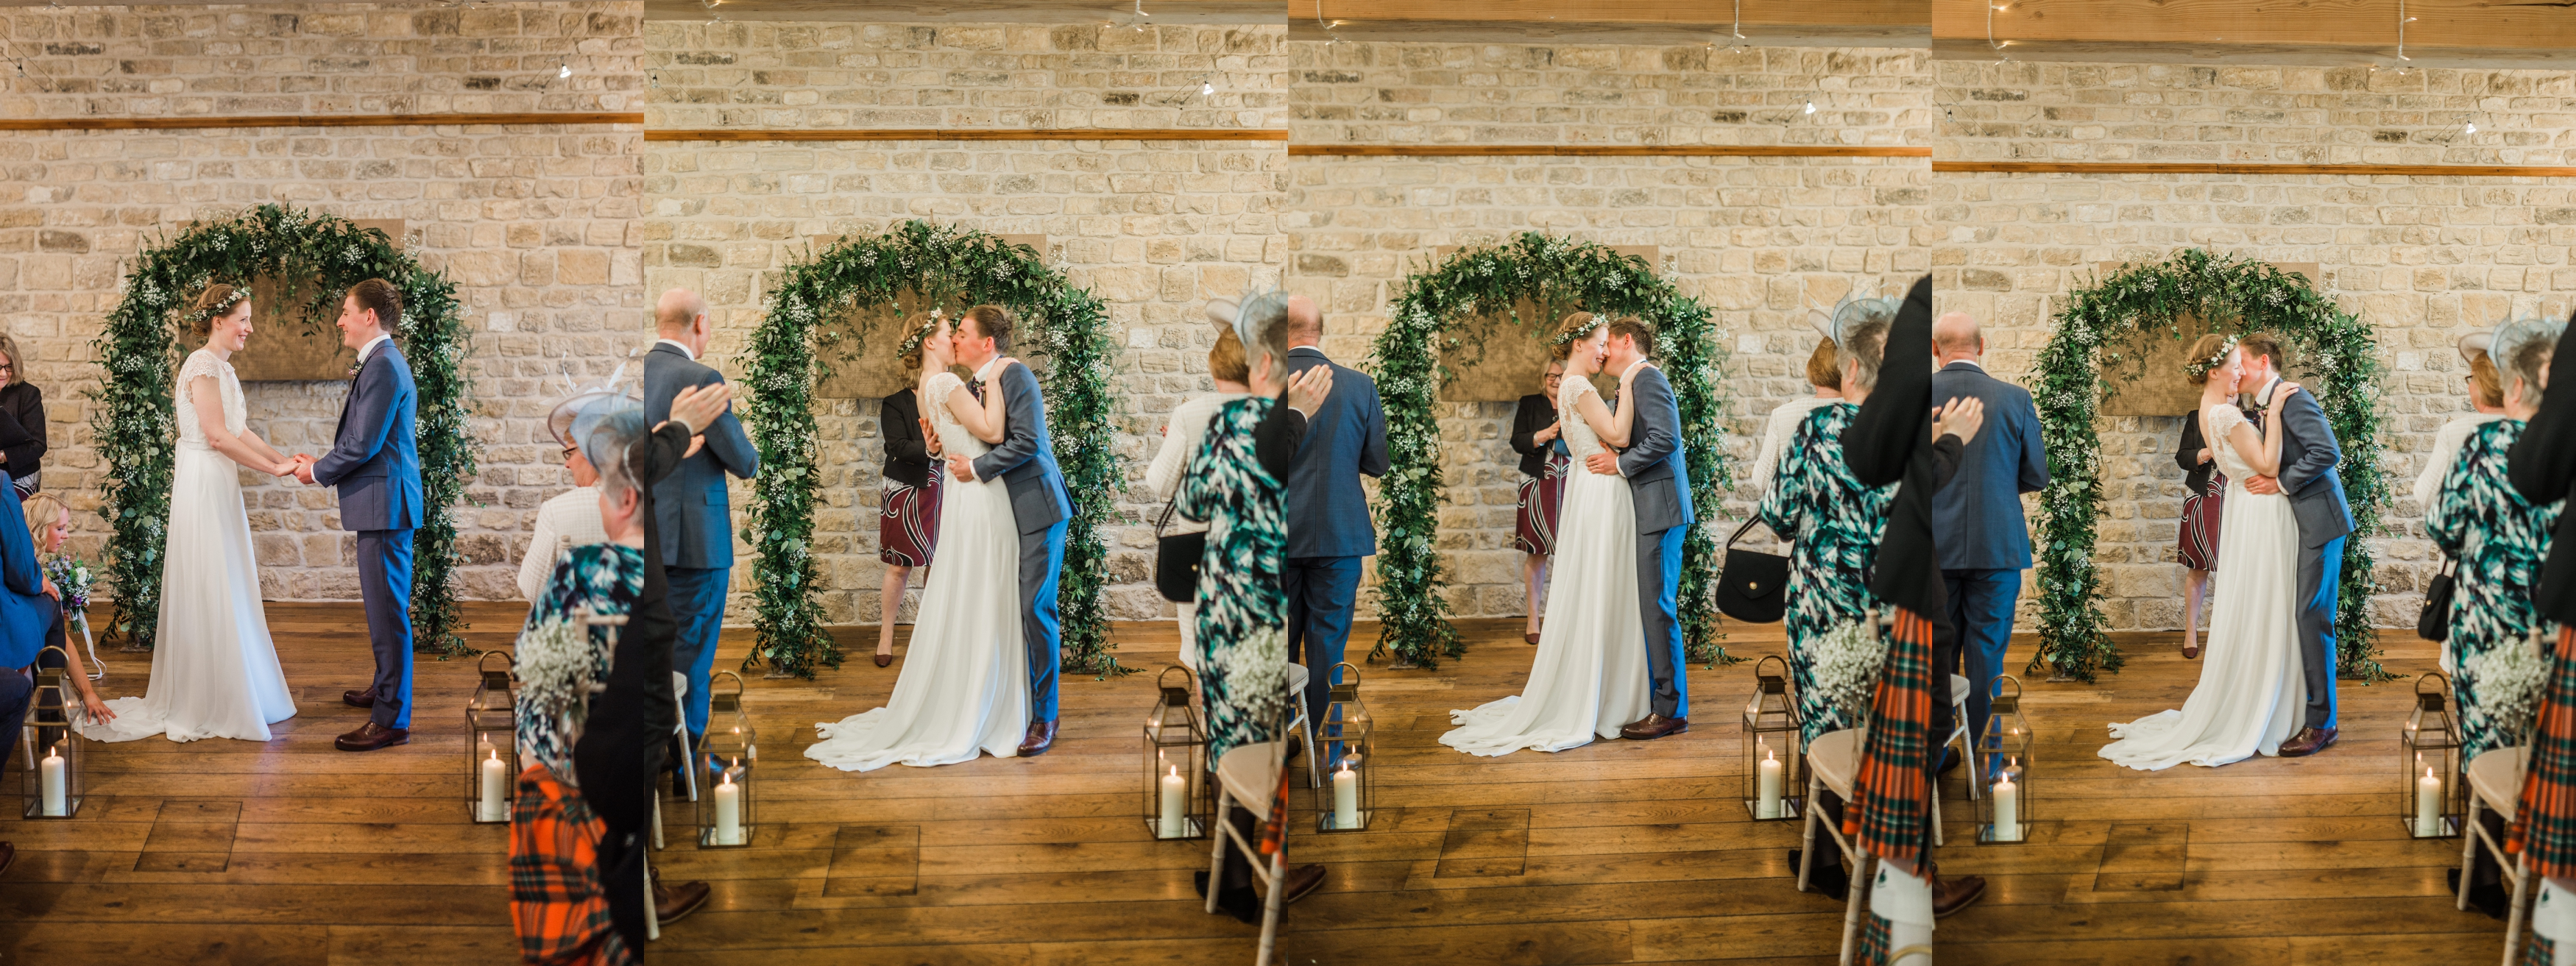 Bride and Groom share first kiss at a leafy alter